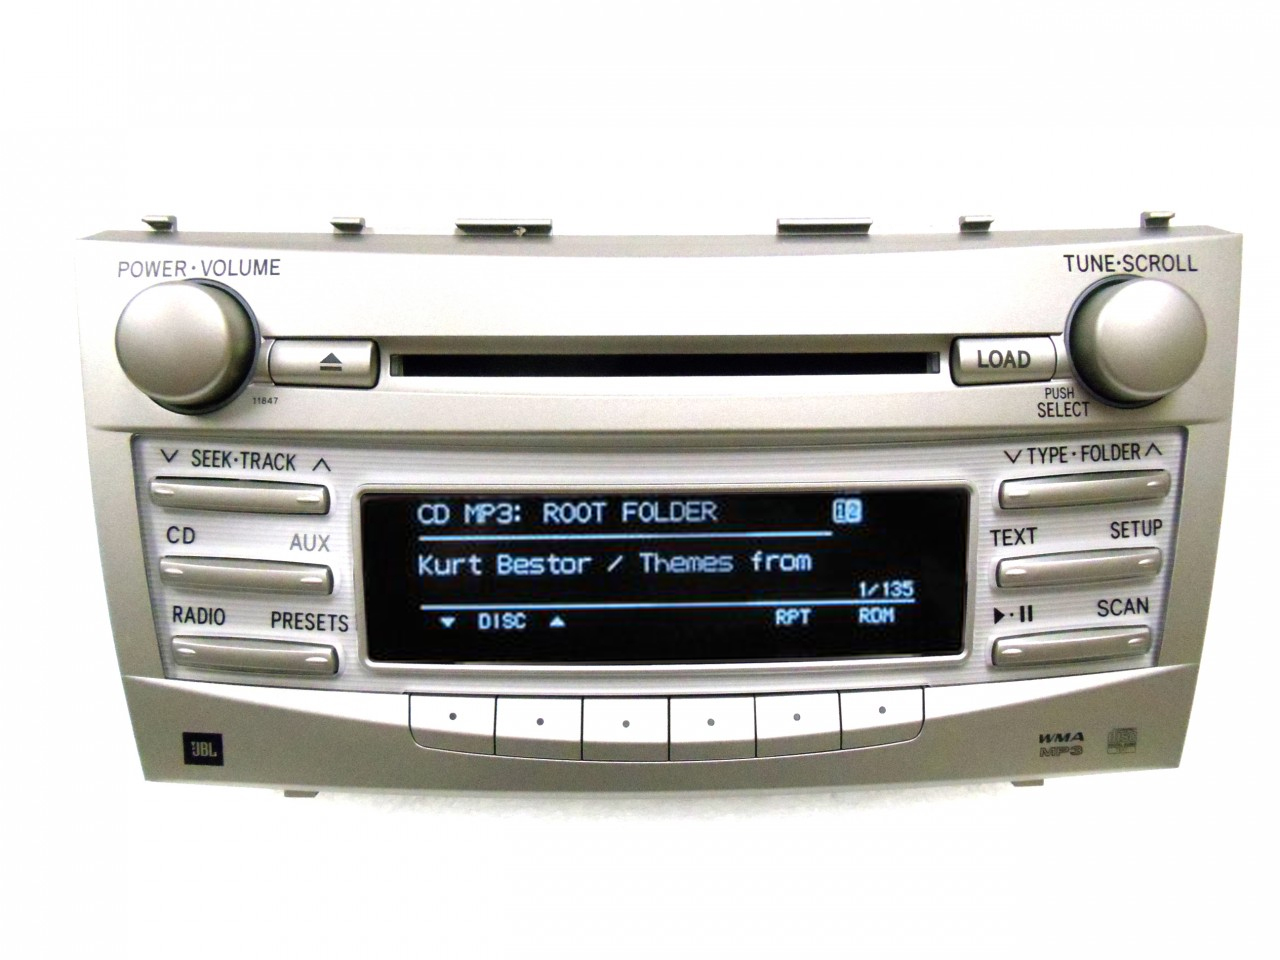 new toyota camry jbl radio 6 disc changer mp3 cd player. Black Bedroom Furniture Sets. Home Design Ideas